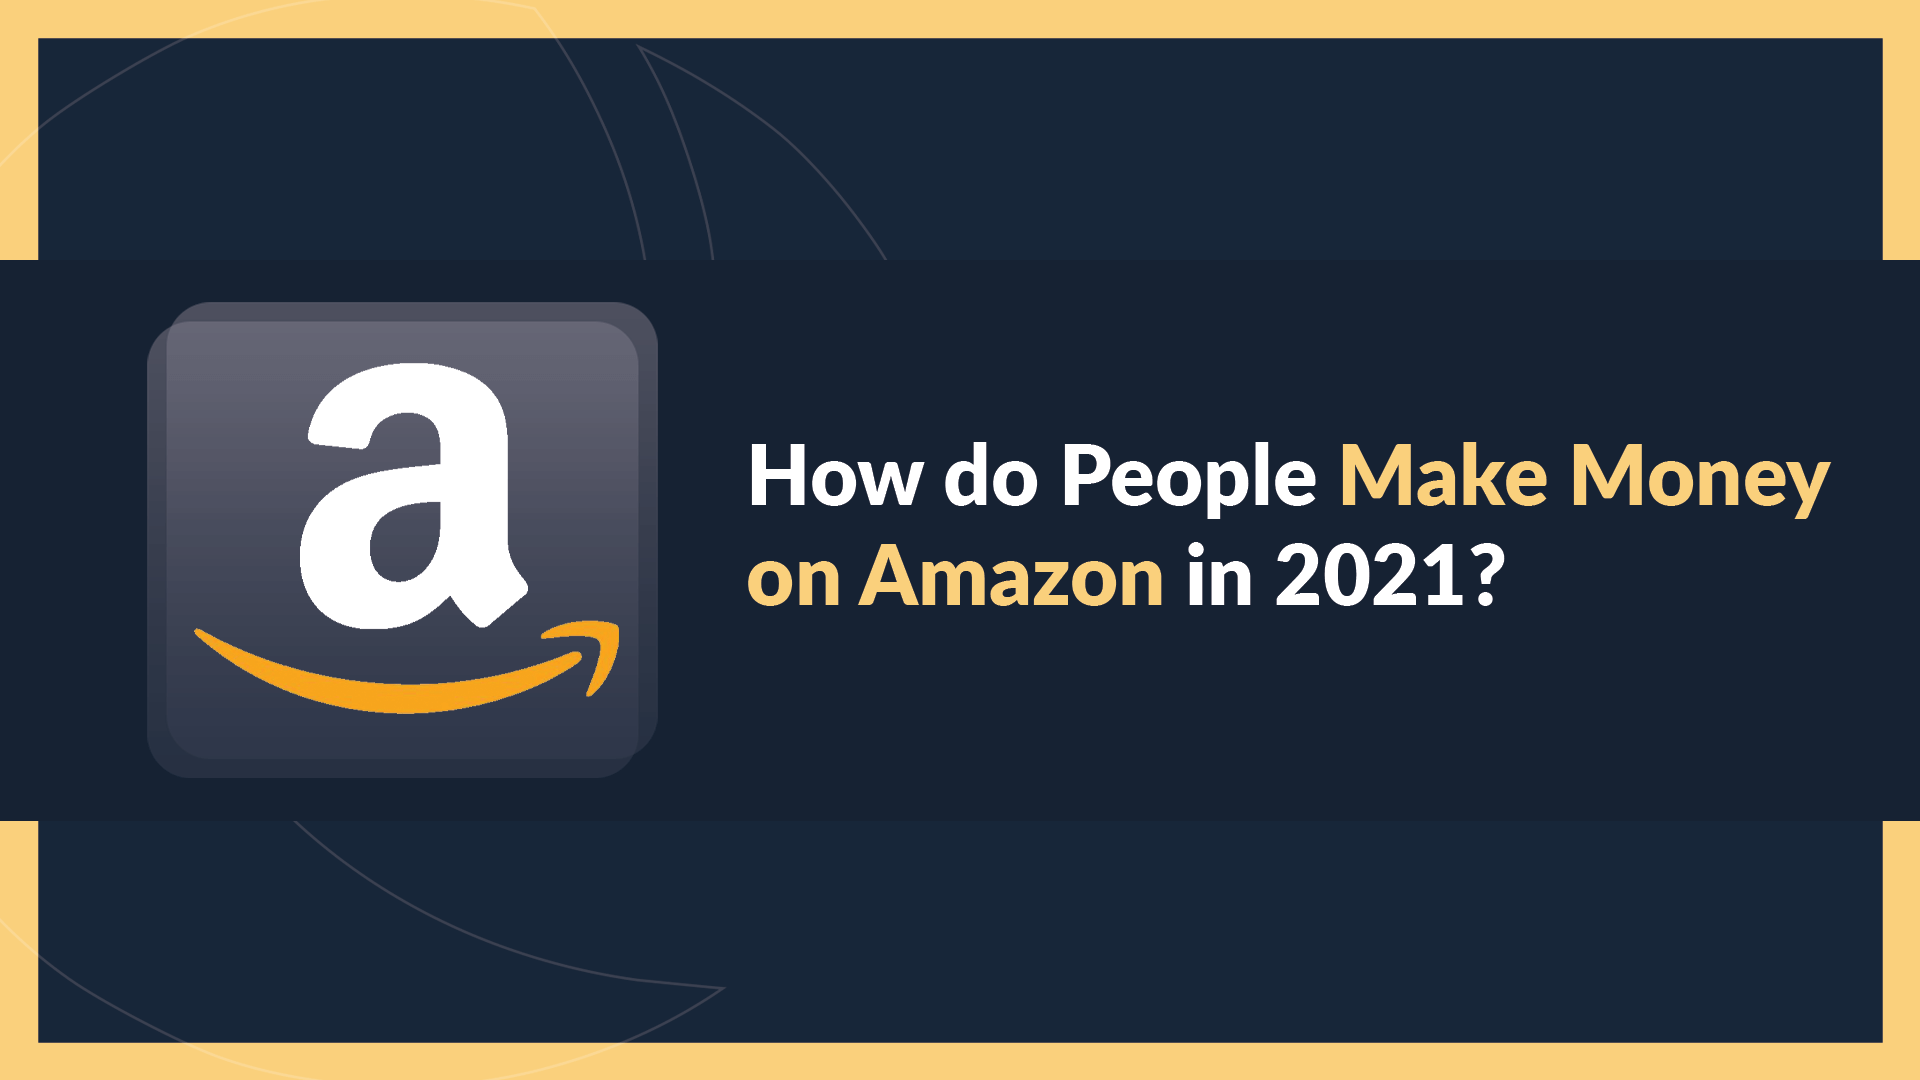 How do People Make Money on Amazon in 2021?